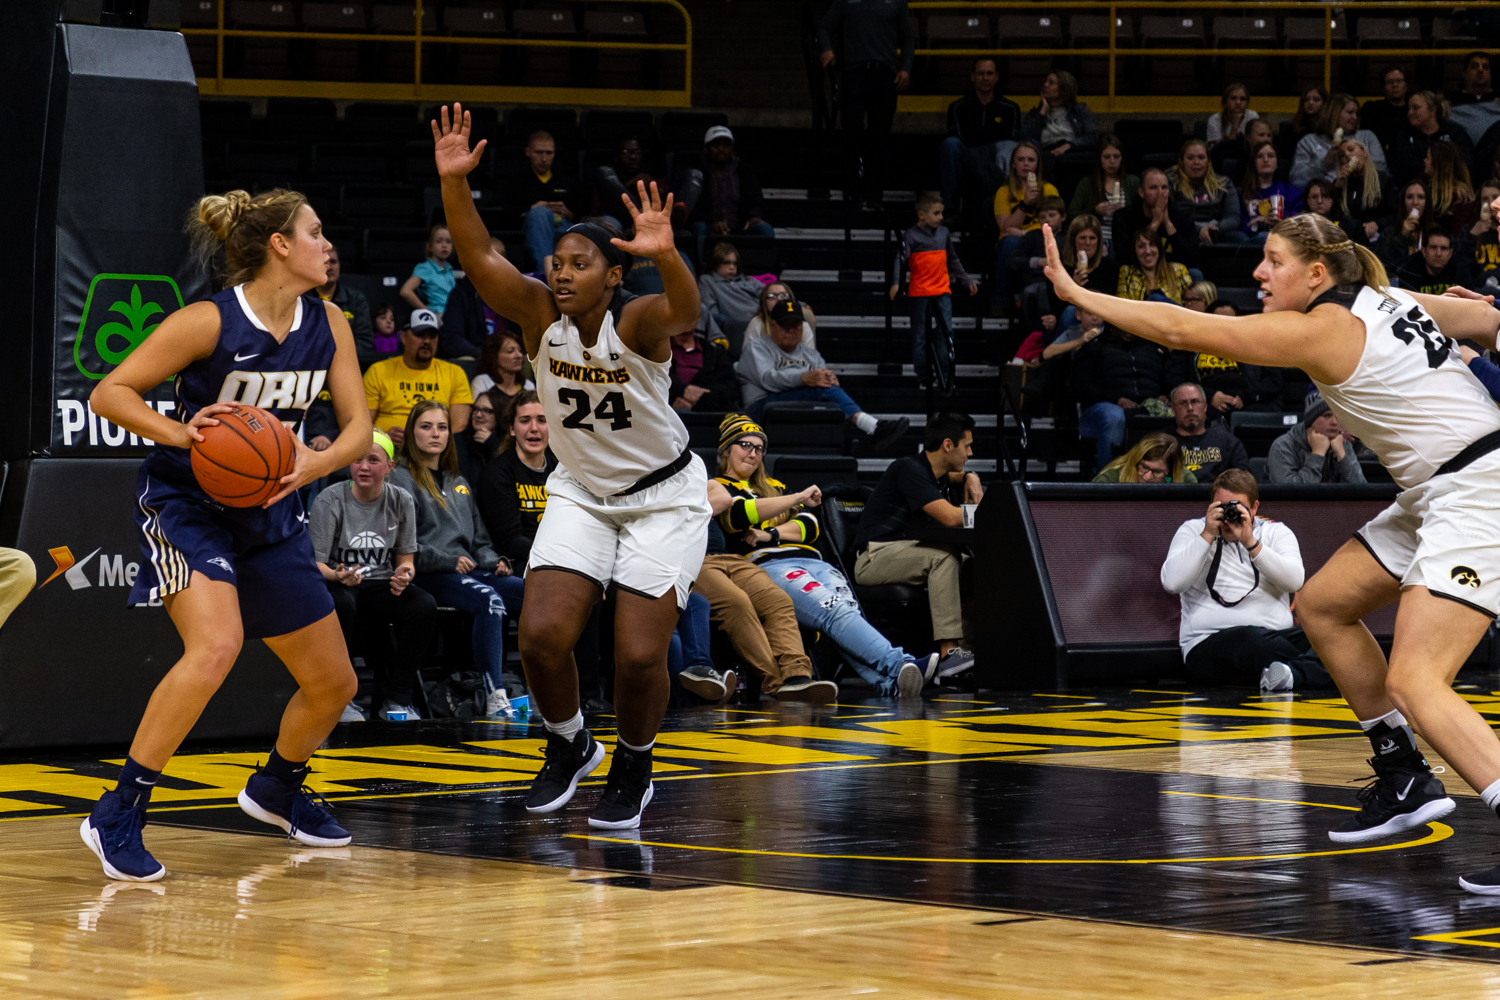 Iowa guard Zion Sanders #24 closes down on an opposing player during a women's basketball game against Oral Roberts University on Friday, Nov. 9, 2018. The Hawkeyes defeated the Golden Eagles 90-77. (David Harmantas/The Daily Iowan)